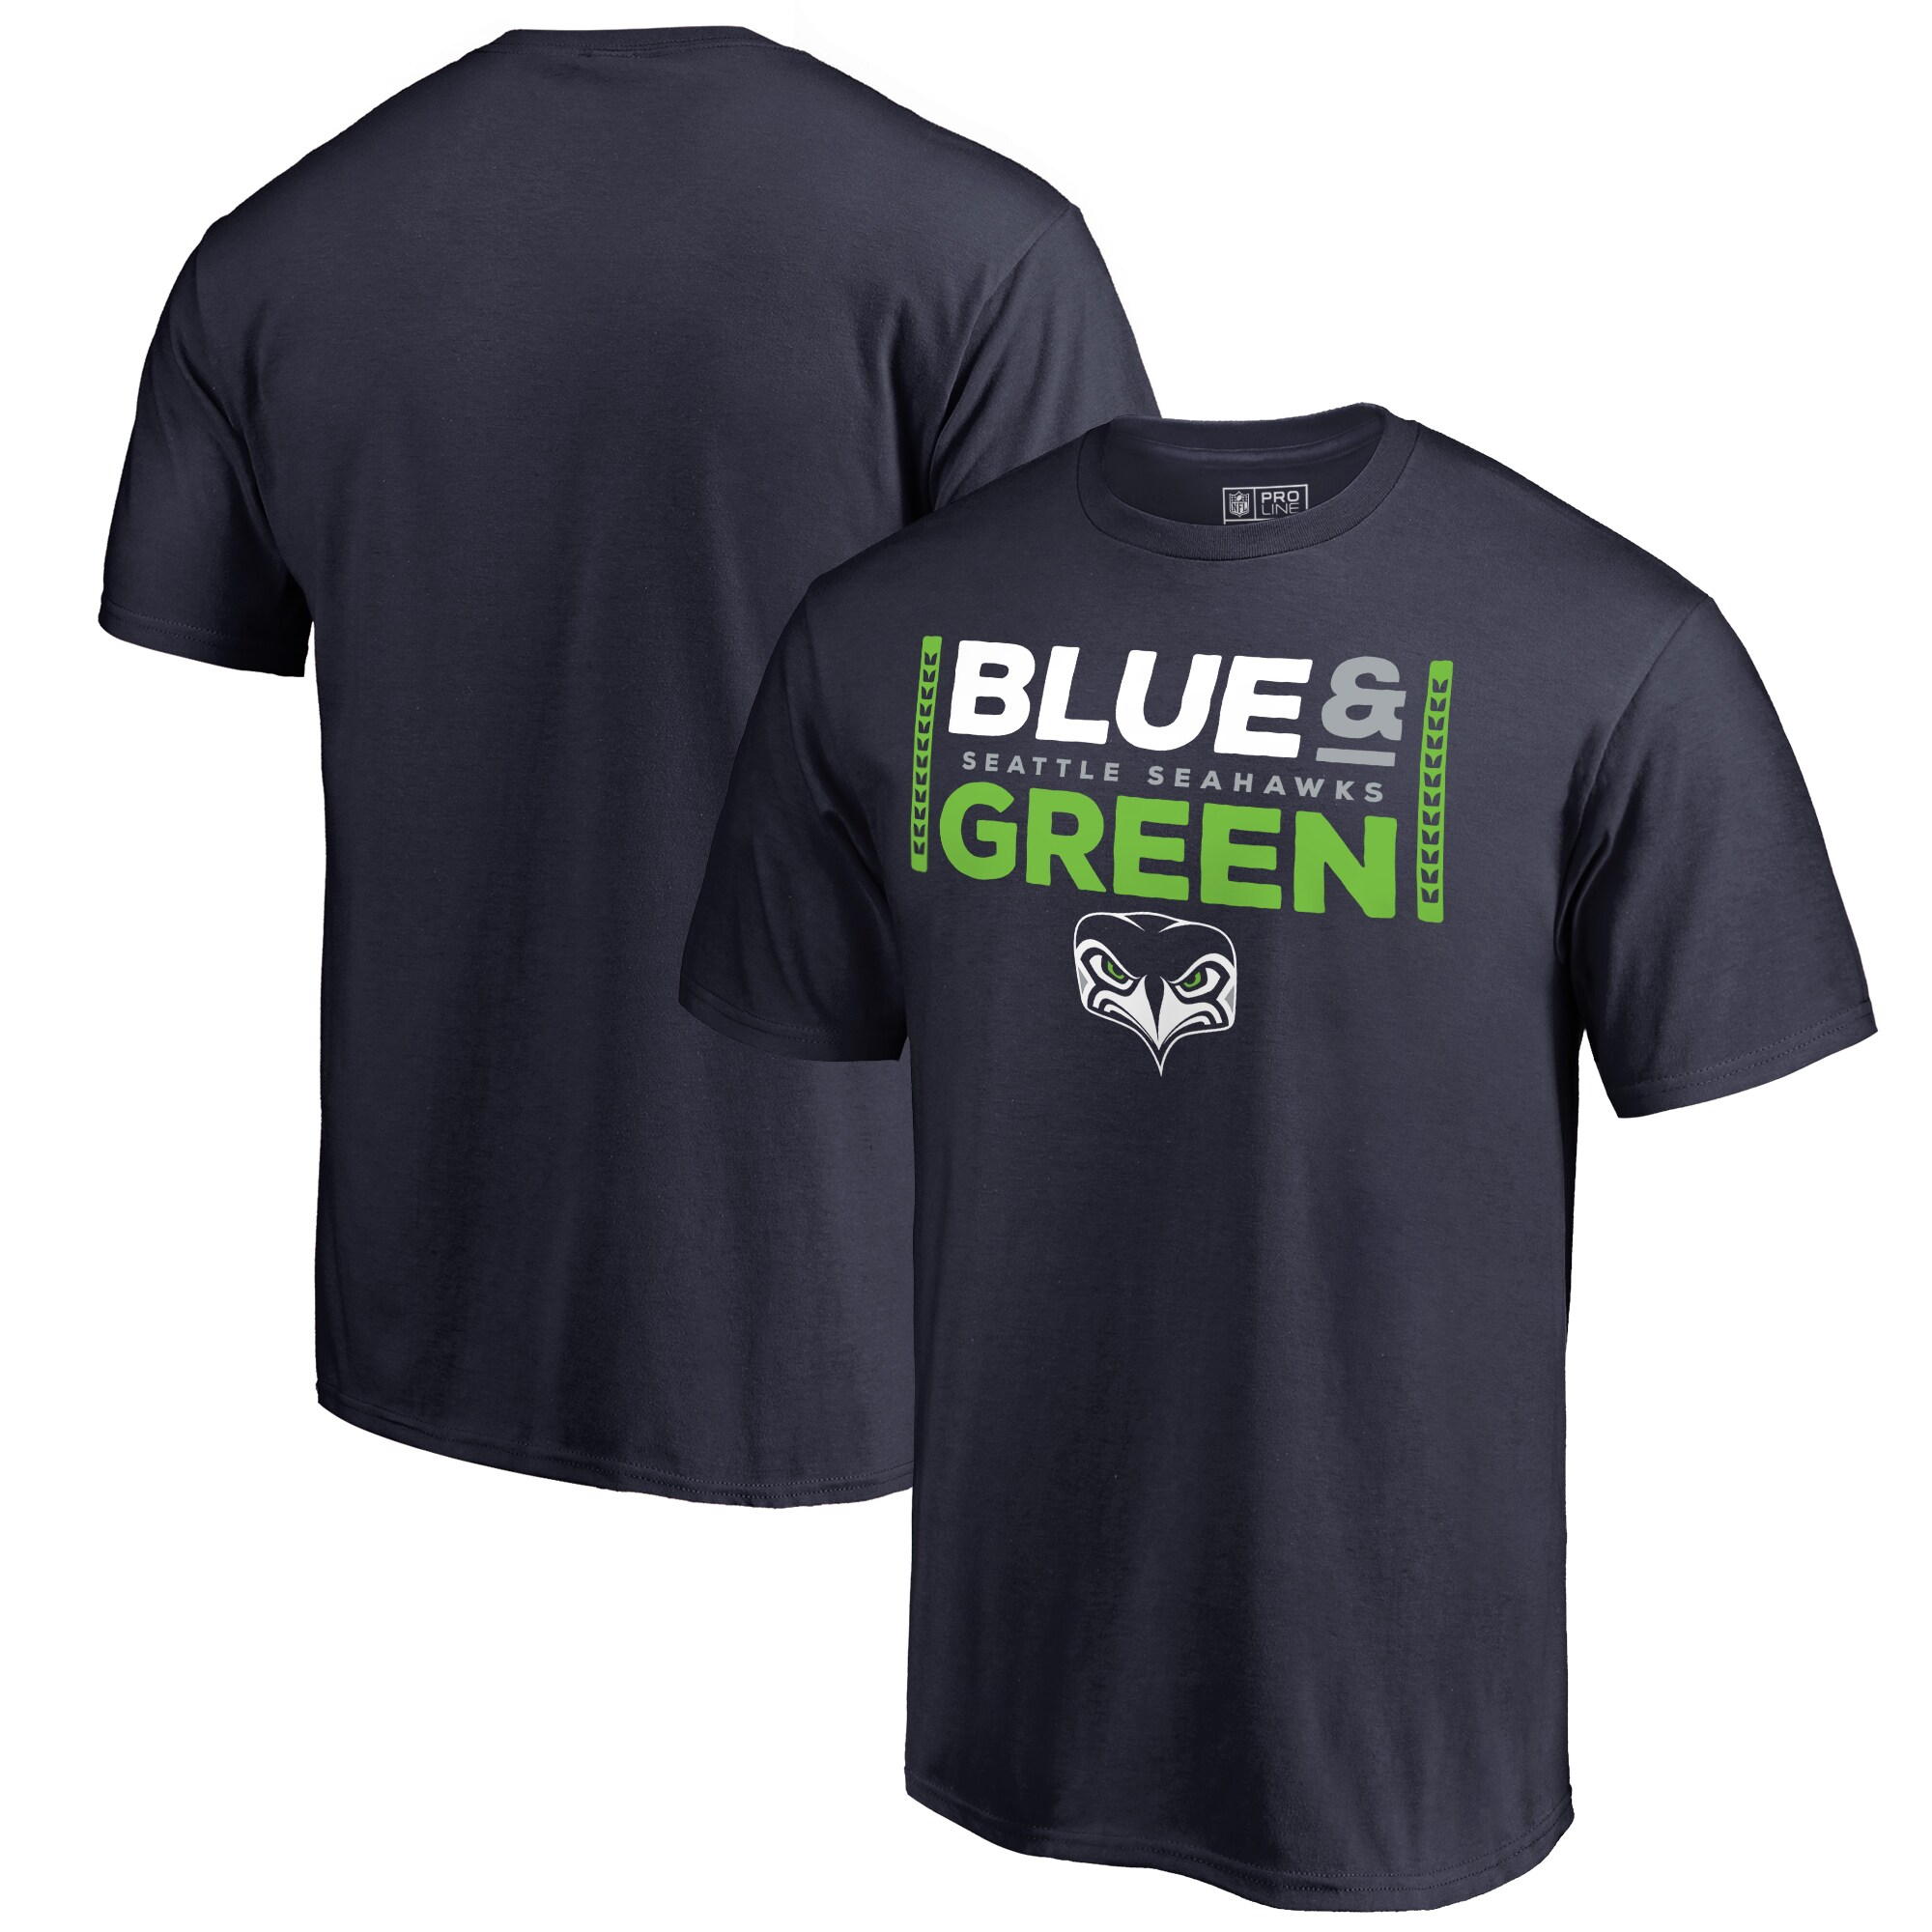 Seattle Seahawks NFL Pro Line by Fanatics Branded Alternate Team Logo Gear Blue & Green Big & Tall T-Shirt - College Navy